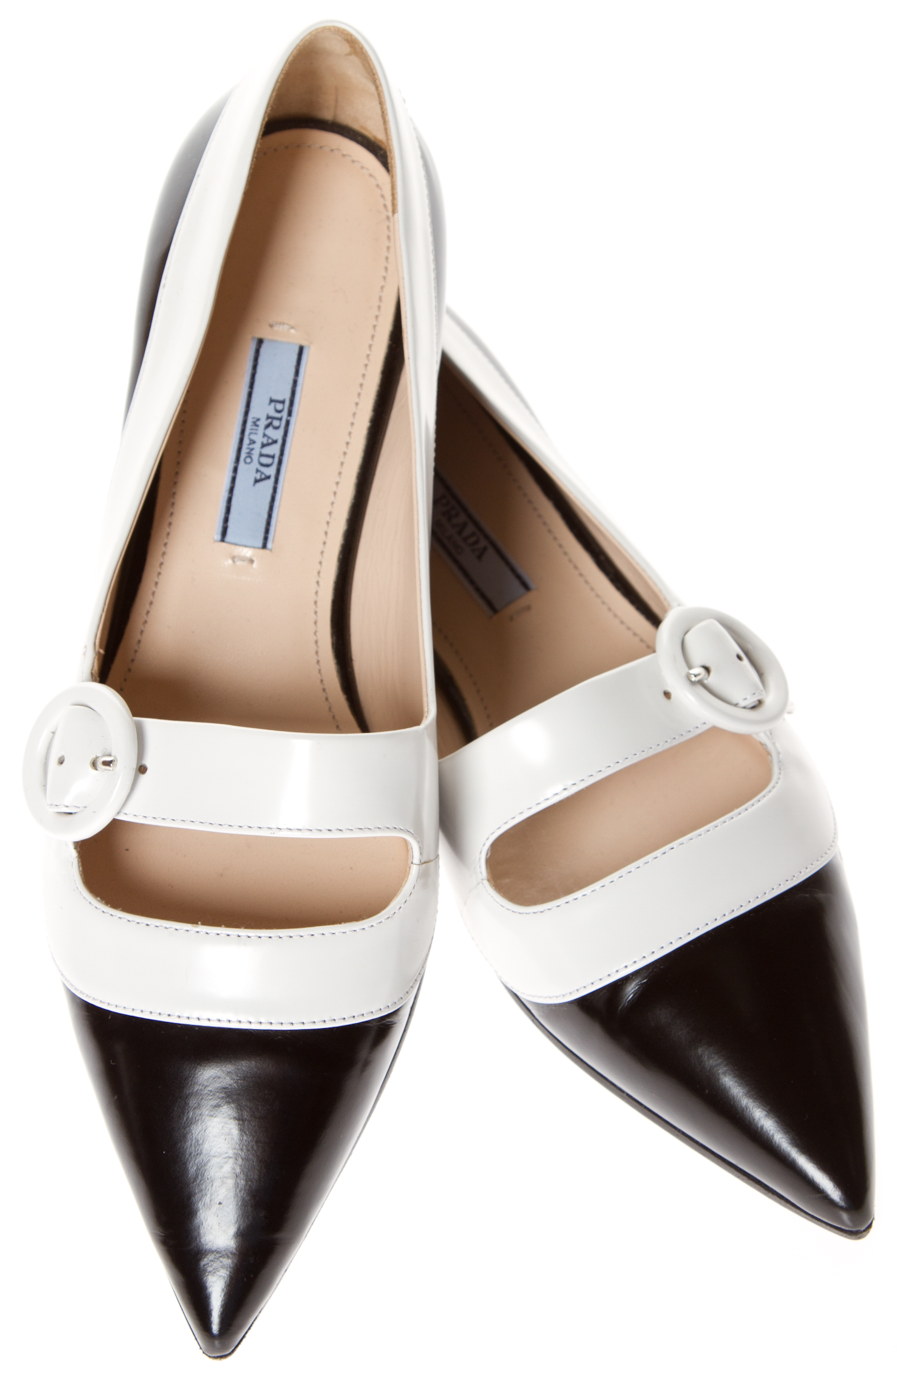 prada shoes polish png images tumblr